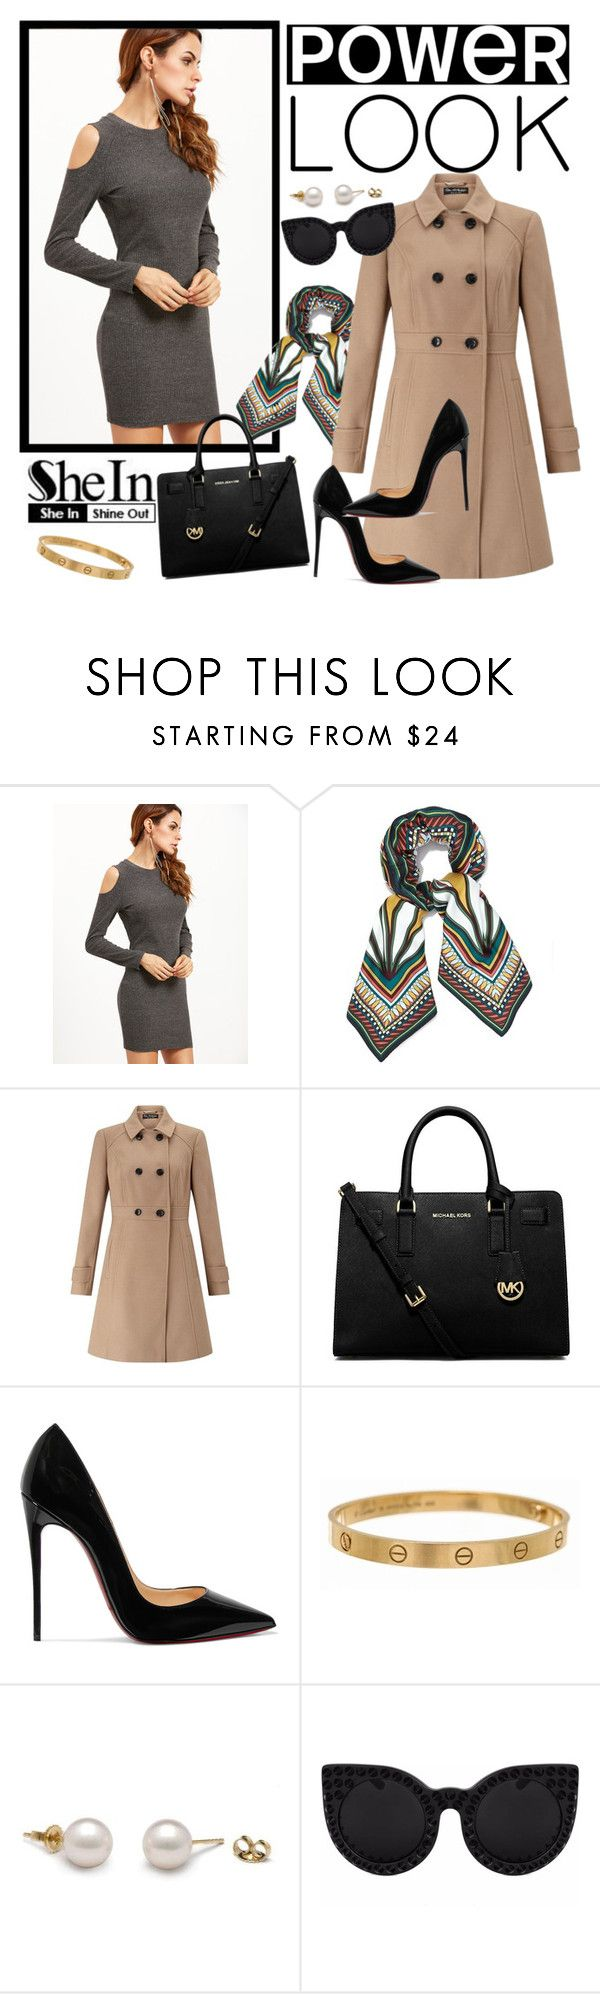 """""""Grey bodycon dress - Shein"""" by barbie-bernard ❤ liked on Polyvore featuring Tory Burch, Miss Selfridge, MICHAEL Michael Kors, Christian Louboutin, Cartier and Delalle"""